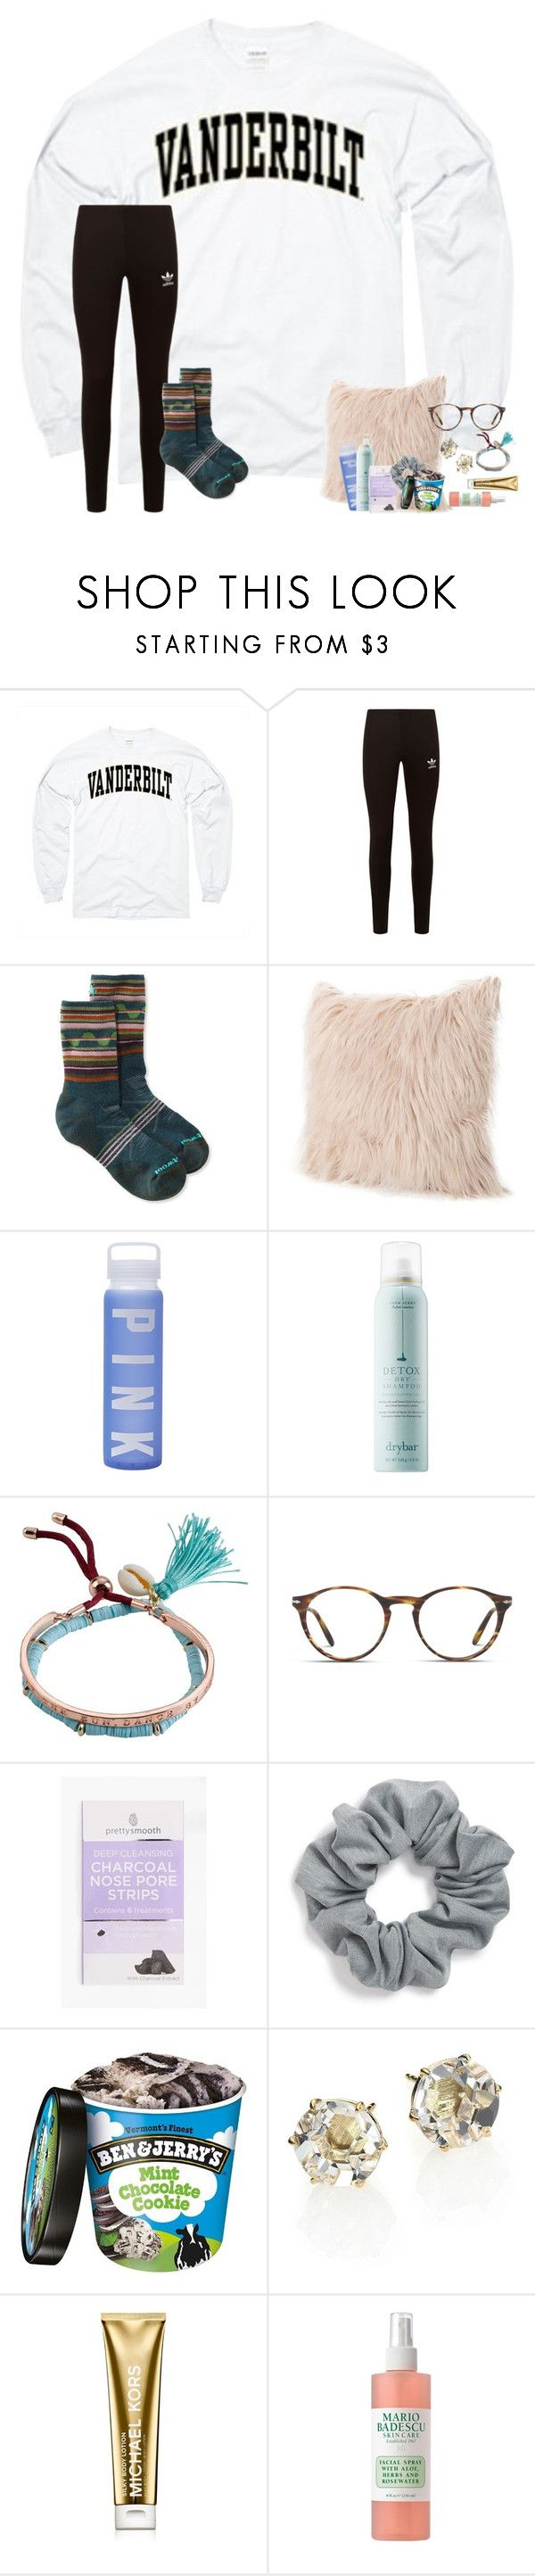 """~ 2 hr facetime:) ~"" by taylortinsley ❤ liked on Polyvore featuring adidas Originals, Smartwool, Victoria's Secret, Drybar, Billabong, Persol, Natasha, Ippolita, Michael Kors and Mario Badescu Skin Care"